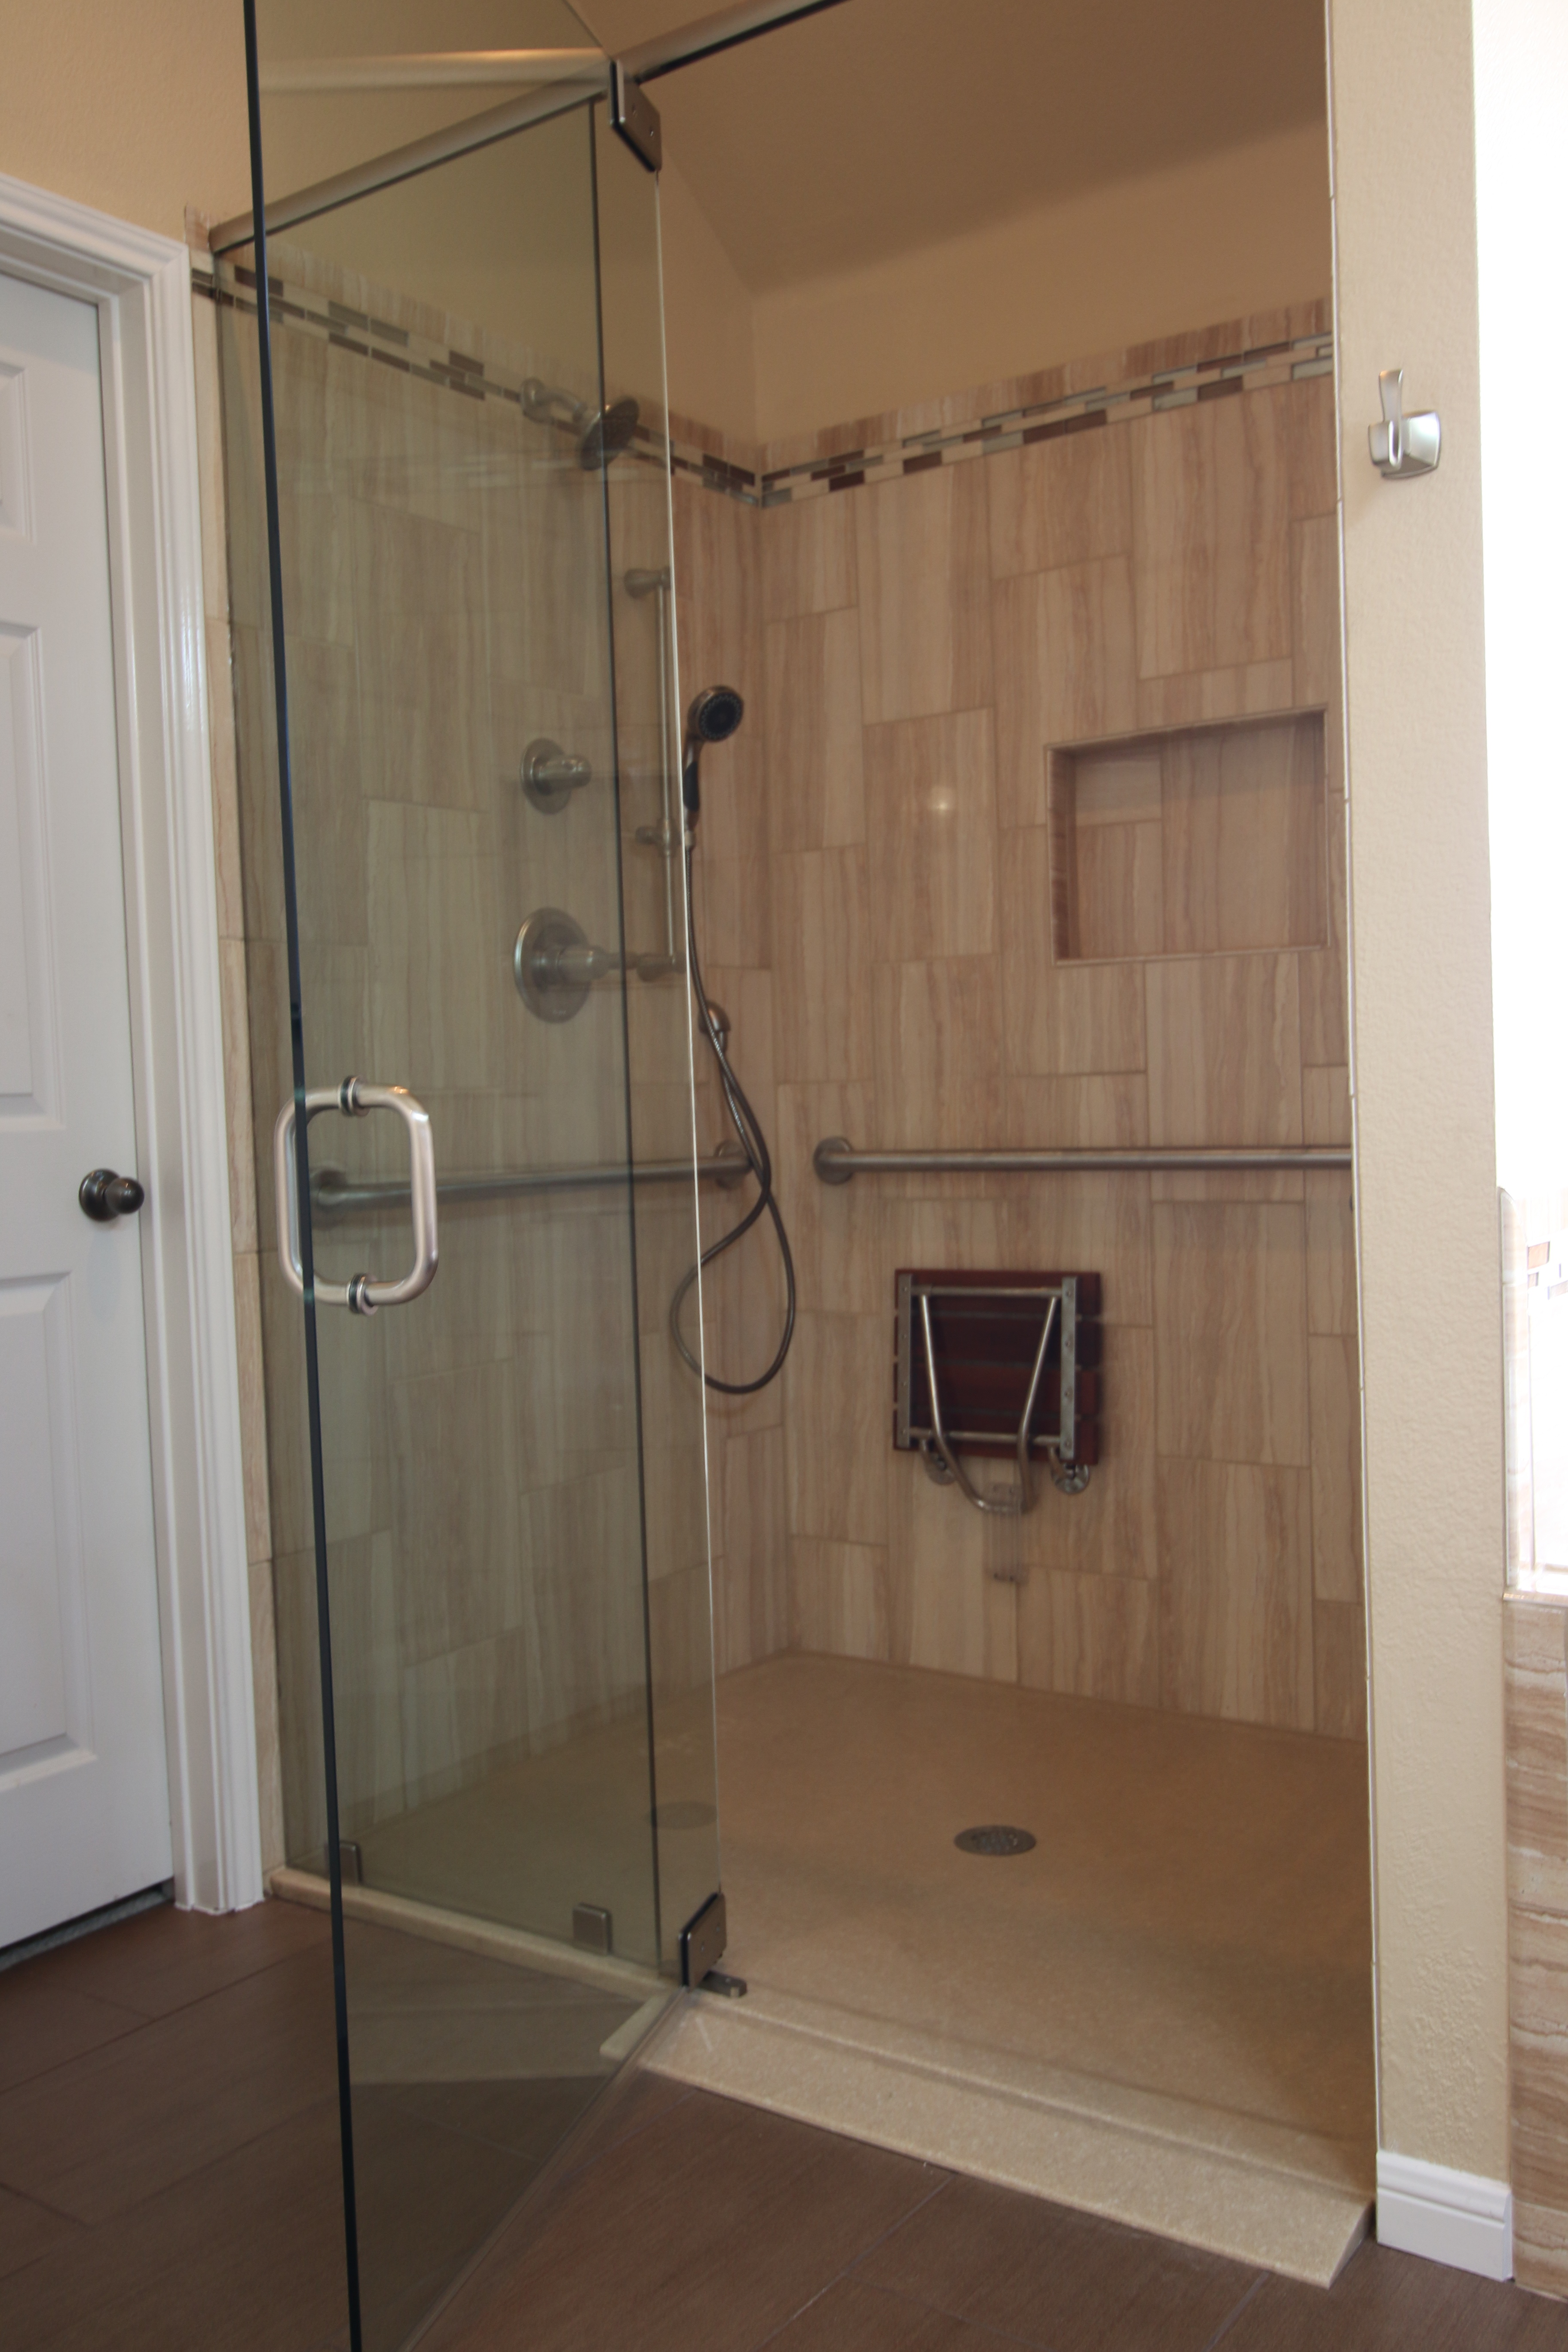 Bathroom Modifications for Disabled Austin, Texas